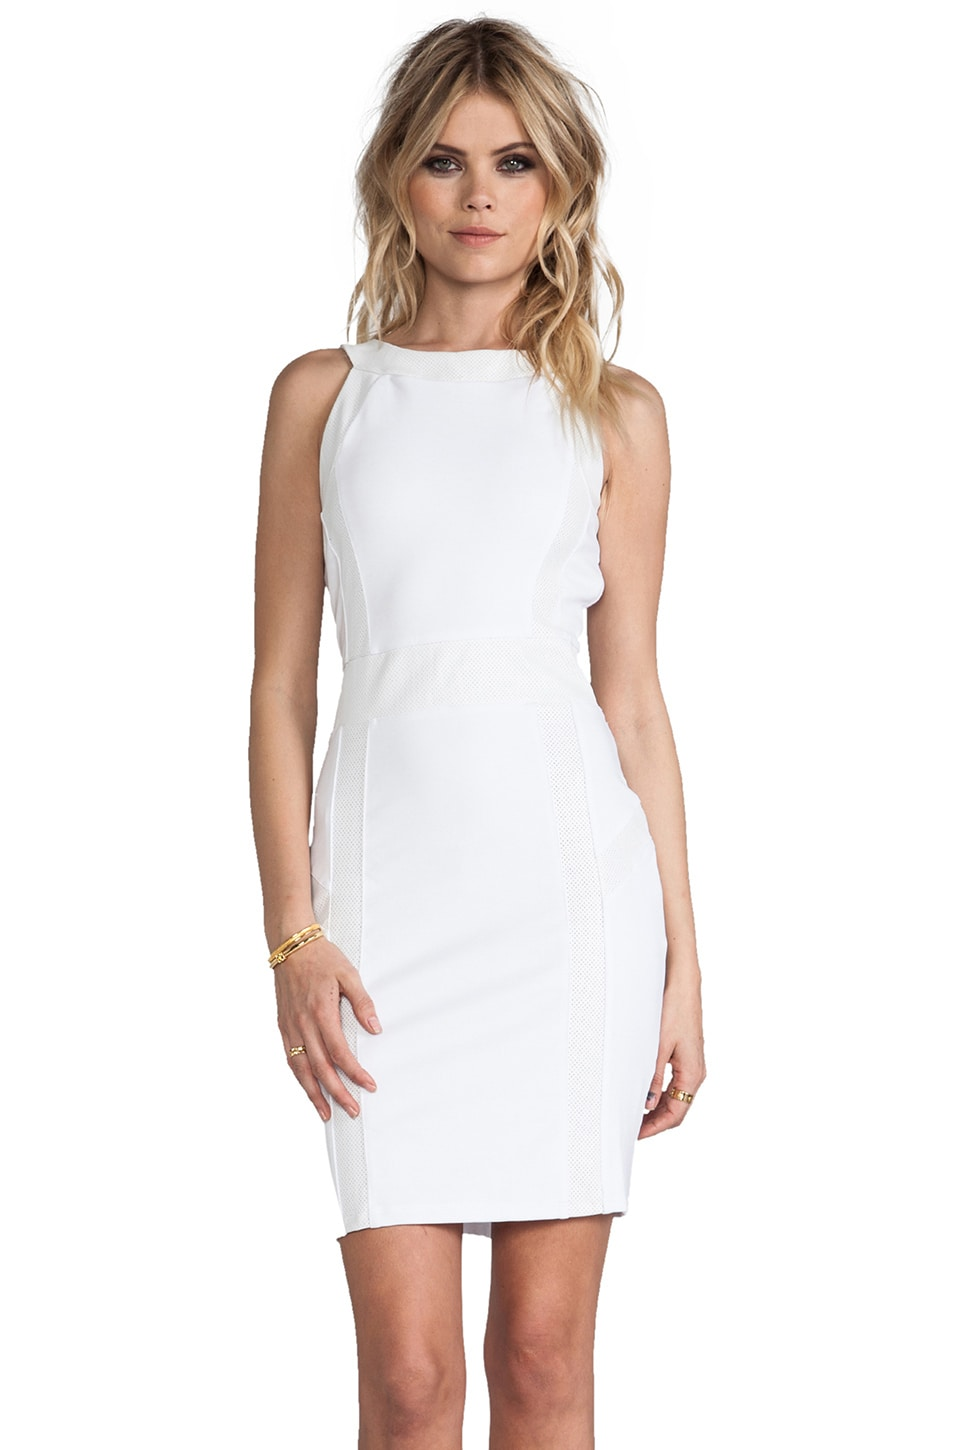 Bobi Ponte Halter Dress with Leather in White